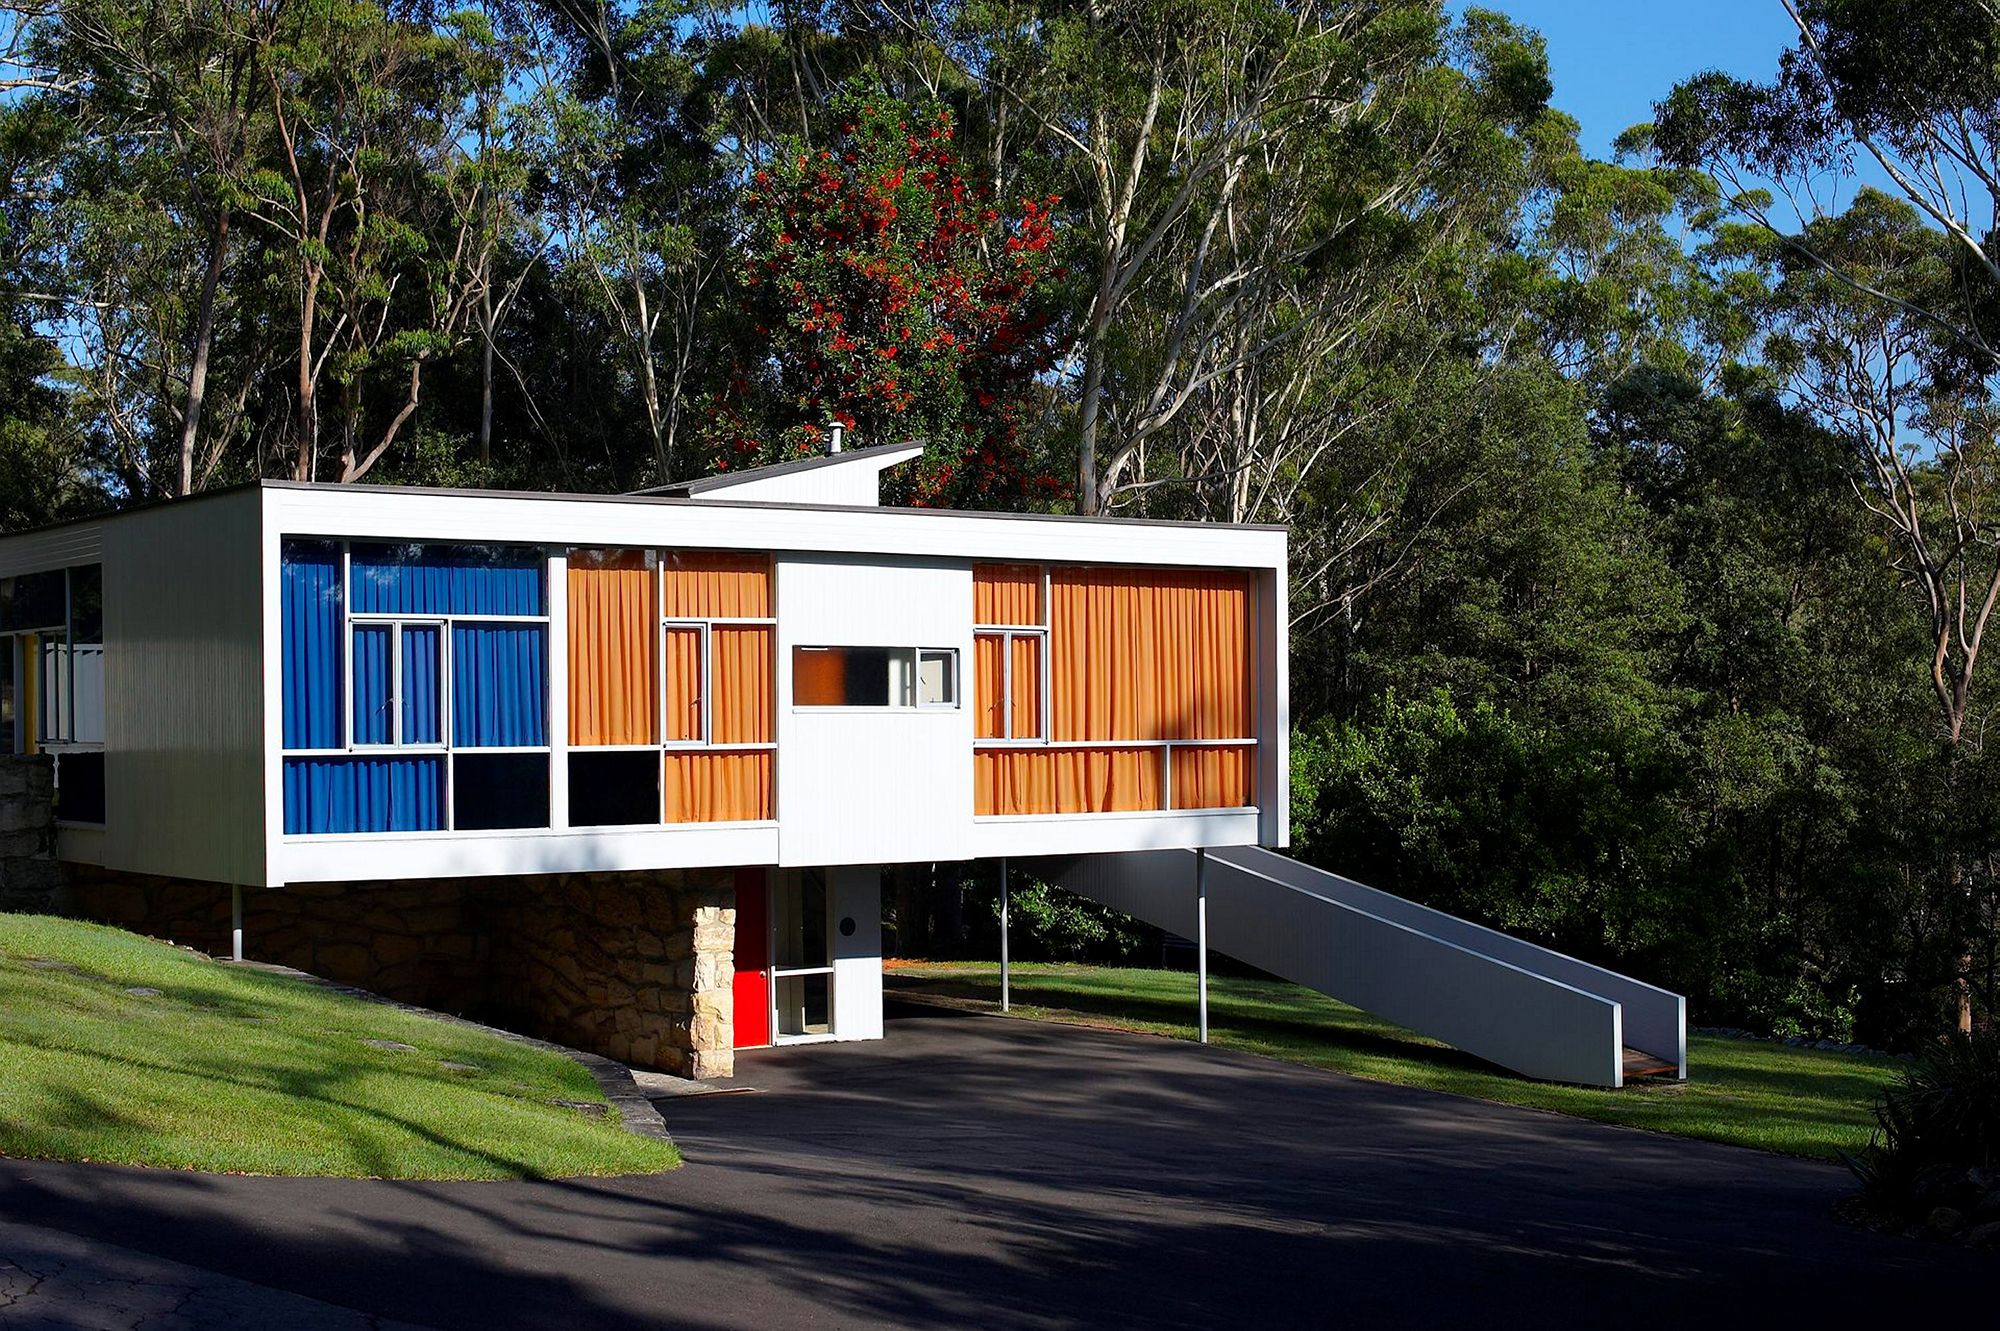 Rectangular modernist house set in garden with trees behind and long white ramp to right of building leading up to side entrance. Front door is underneath house.